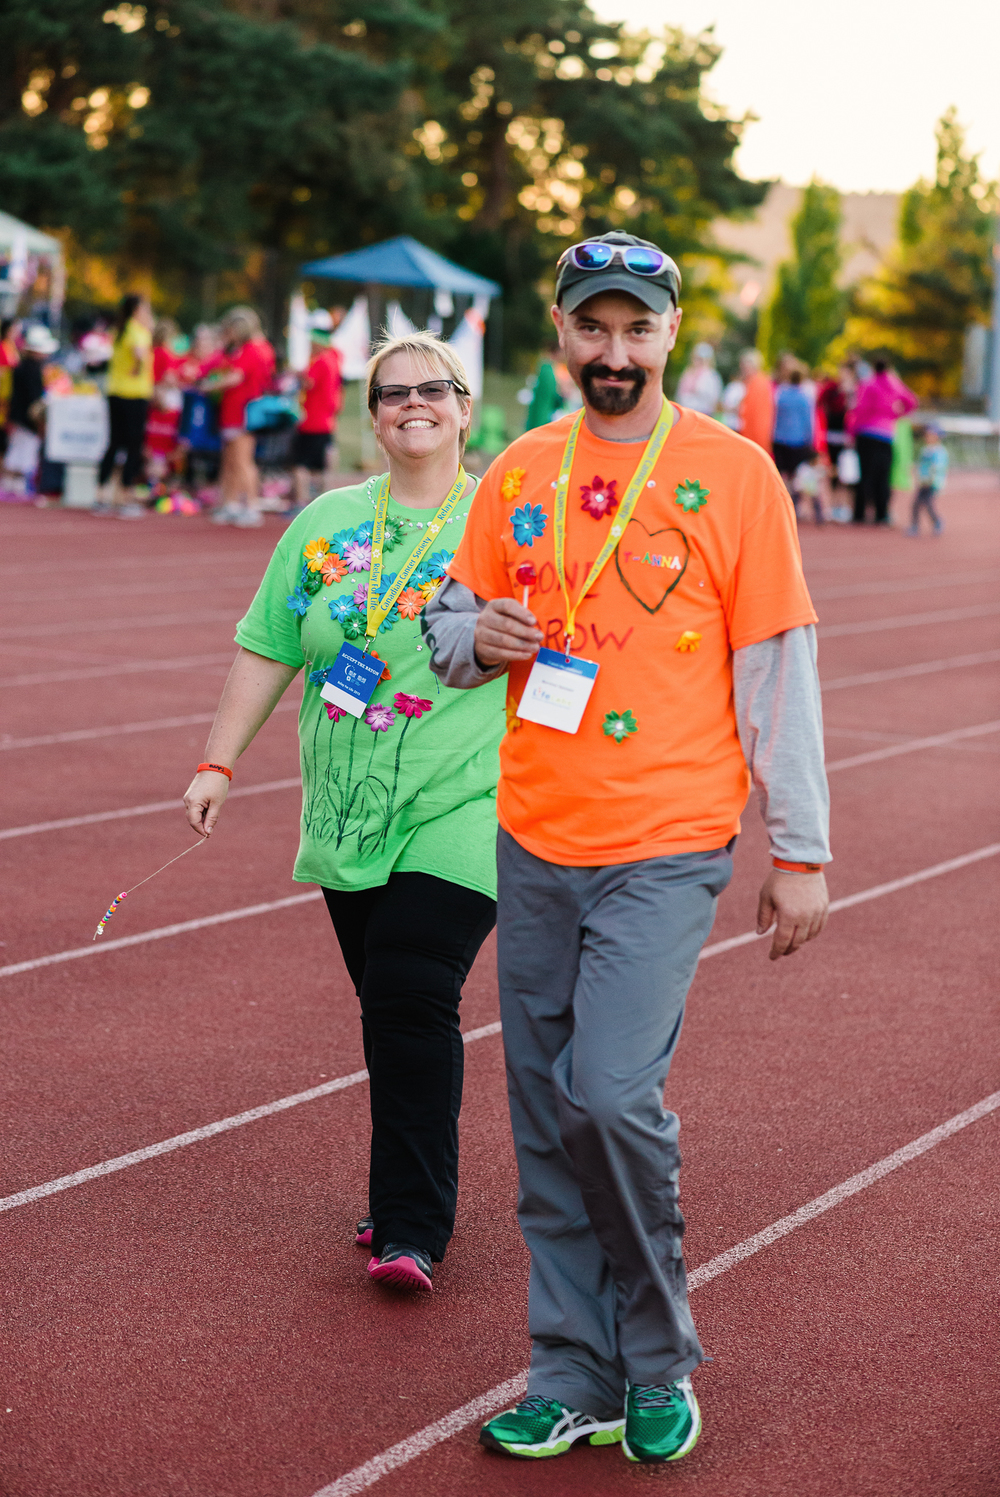 Lily_and_Lane_Relay_For_Life_Victoria_2015 (324).jpg